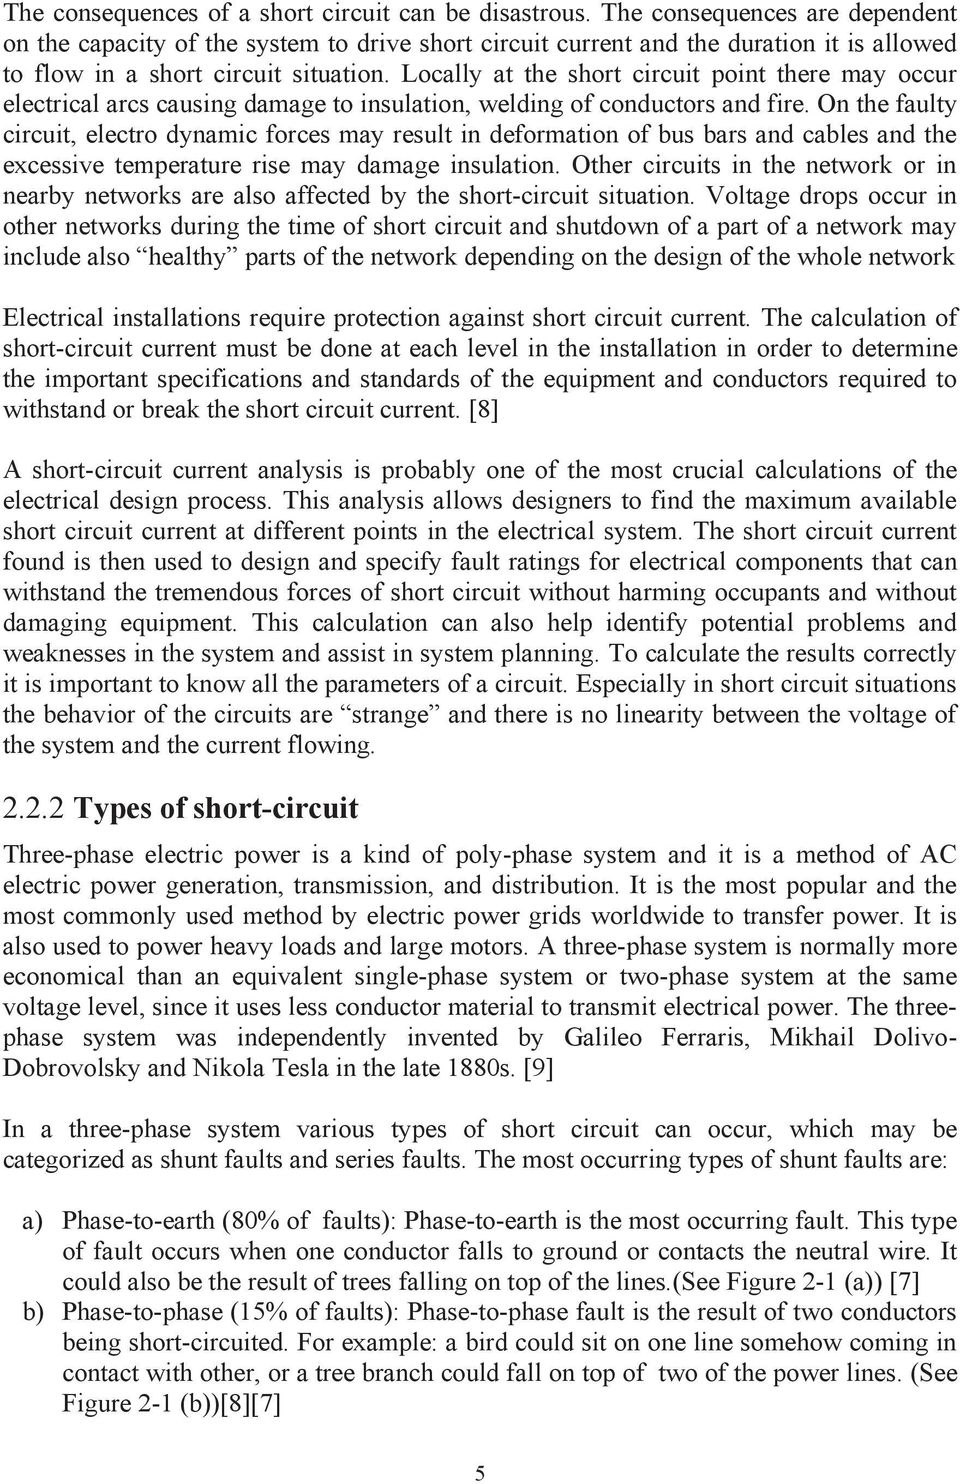 SHORT CIRCUIT CURRENT CALCULATION AND PREVENTION IN HIGH VOLTAGE ...